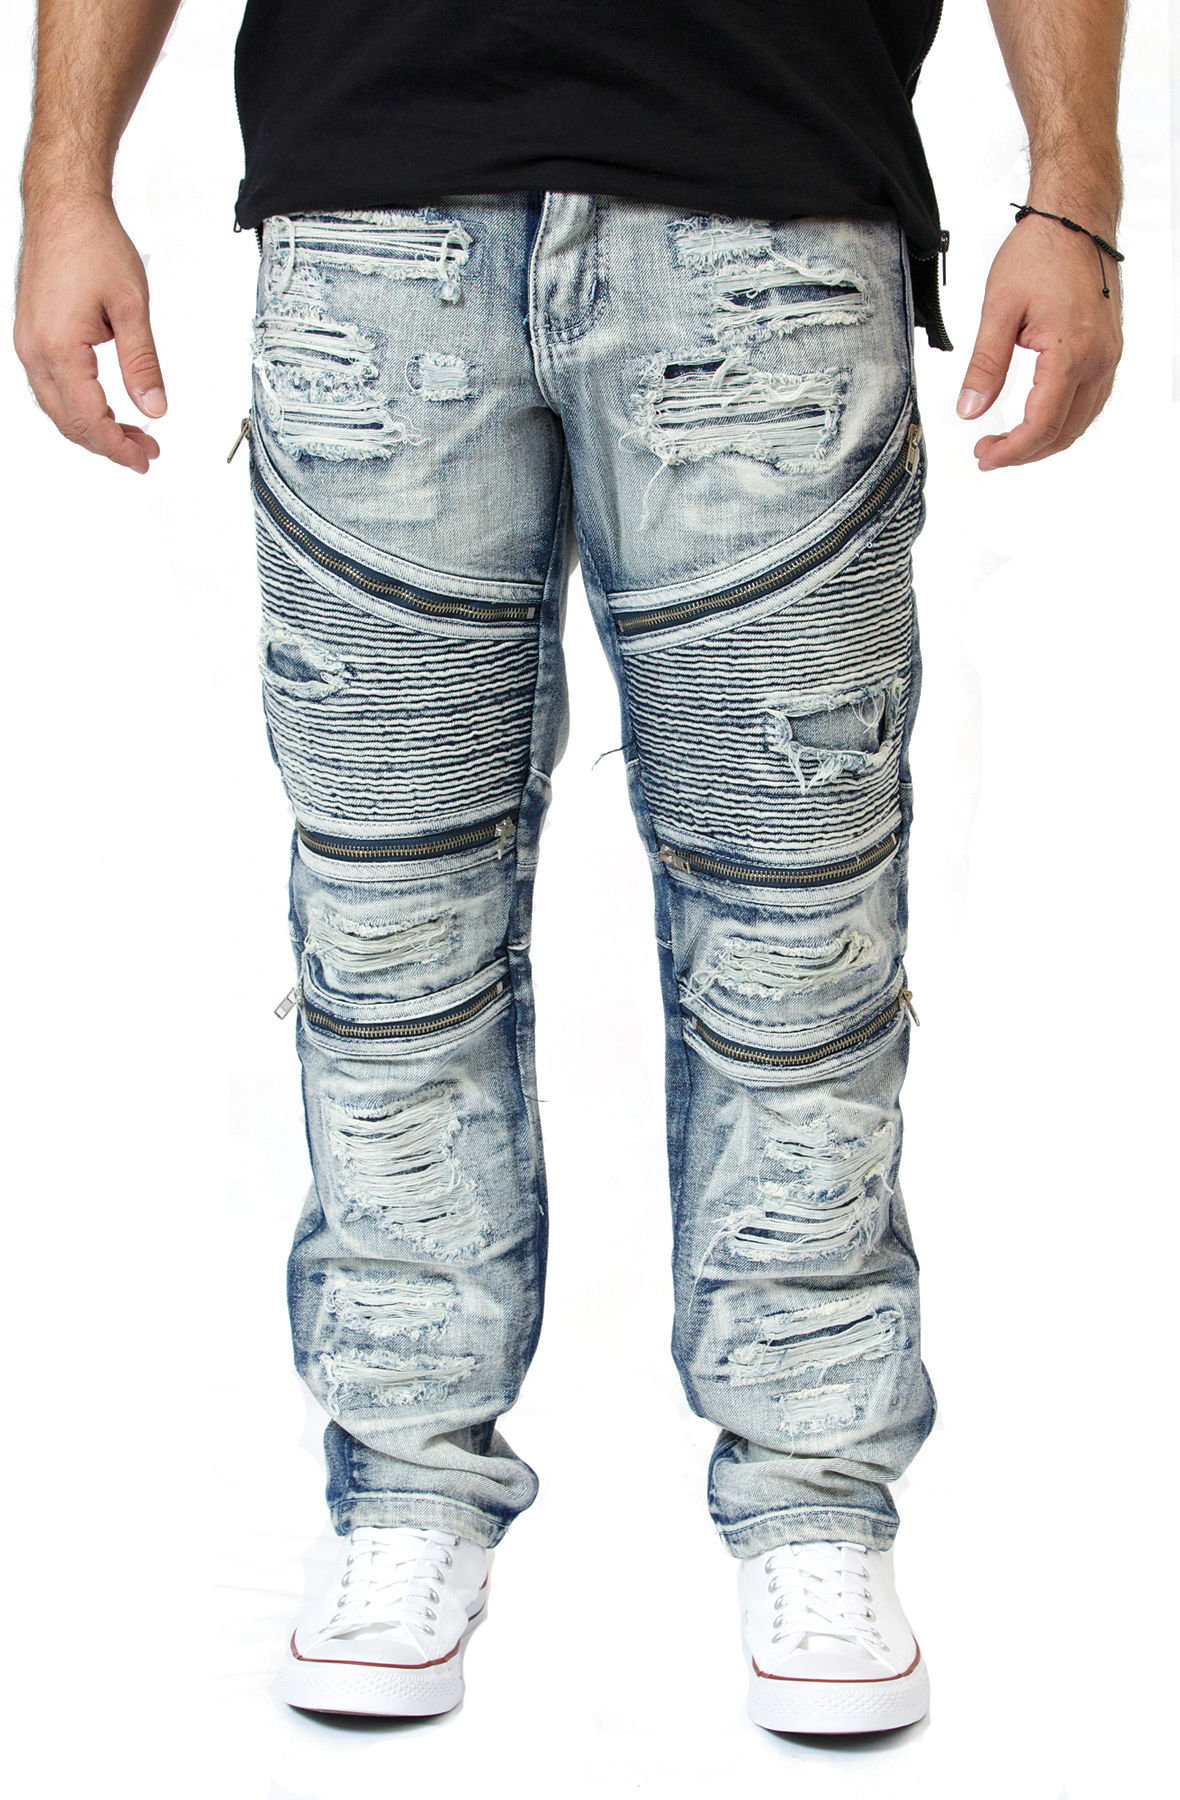 Image of Distressed Biker Jeans in Cool Ice